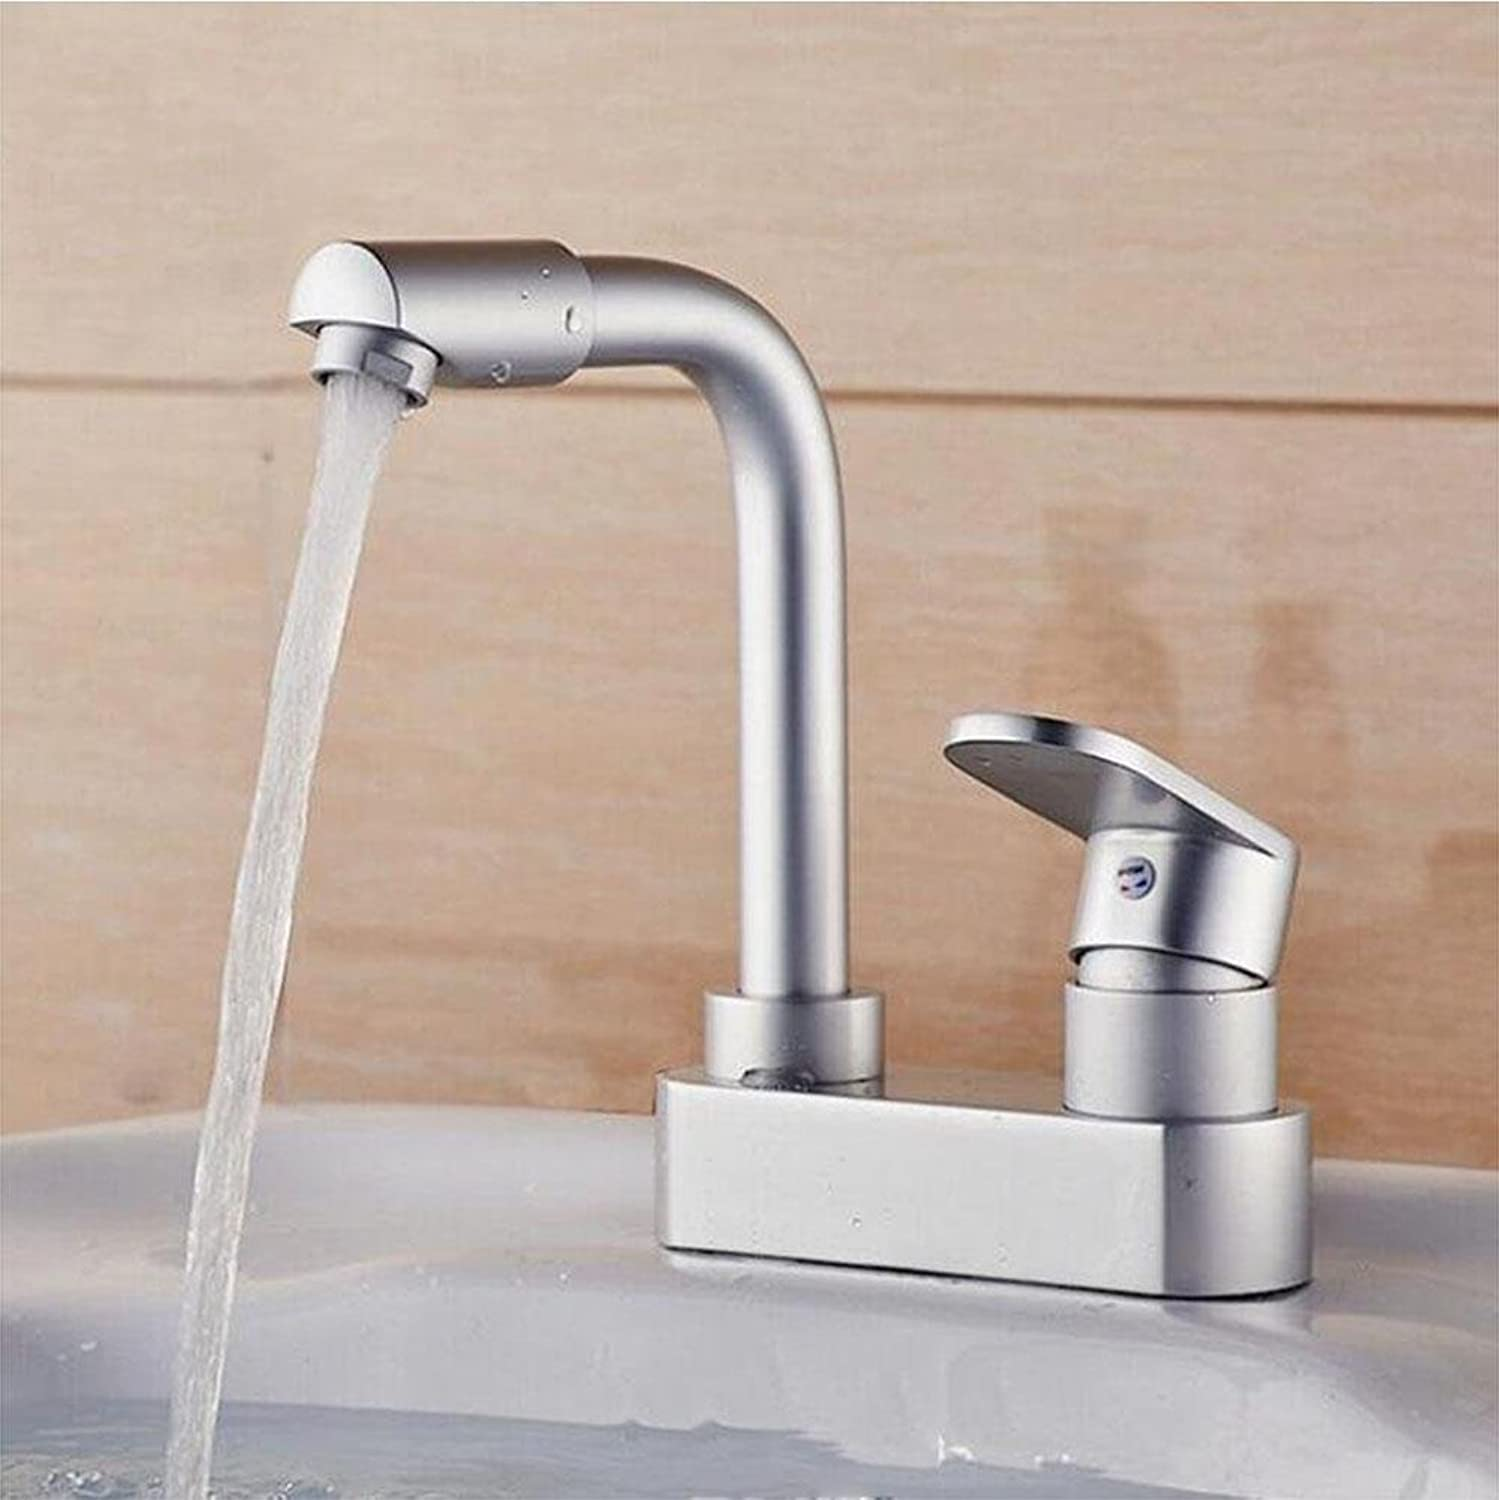 SHIQUNC Hot and Cold Kitchen sink Faucet Basin Mixer Taps 360 Degree redation